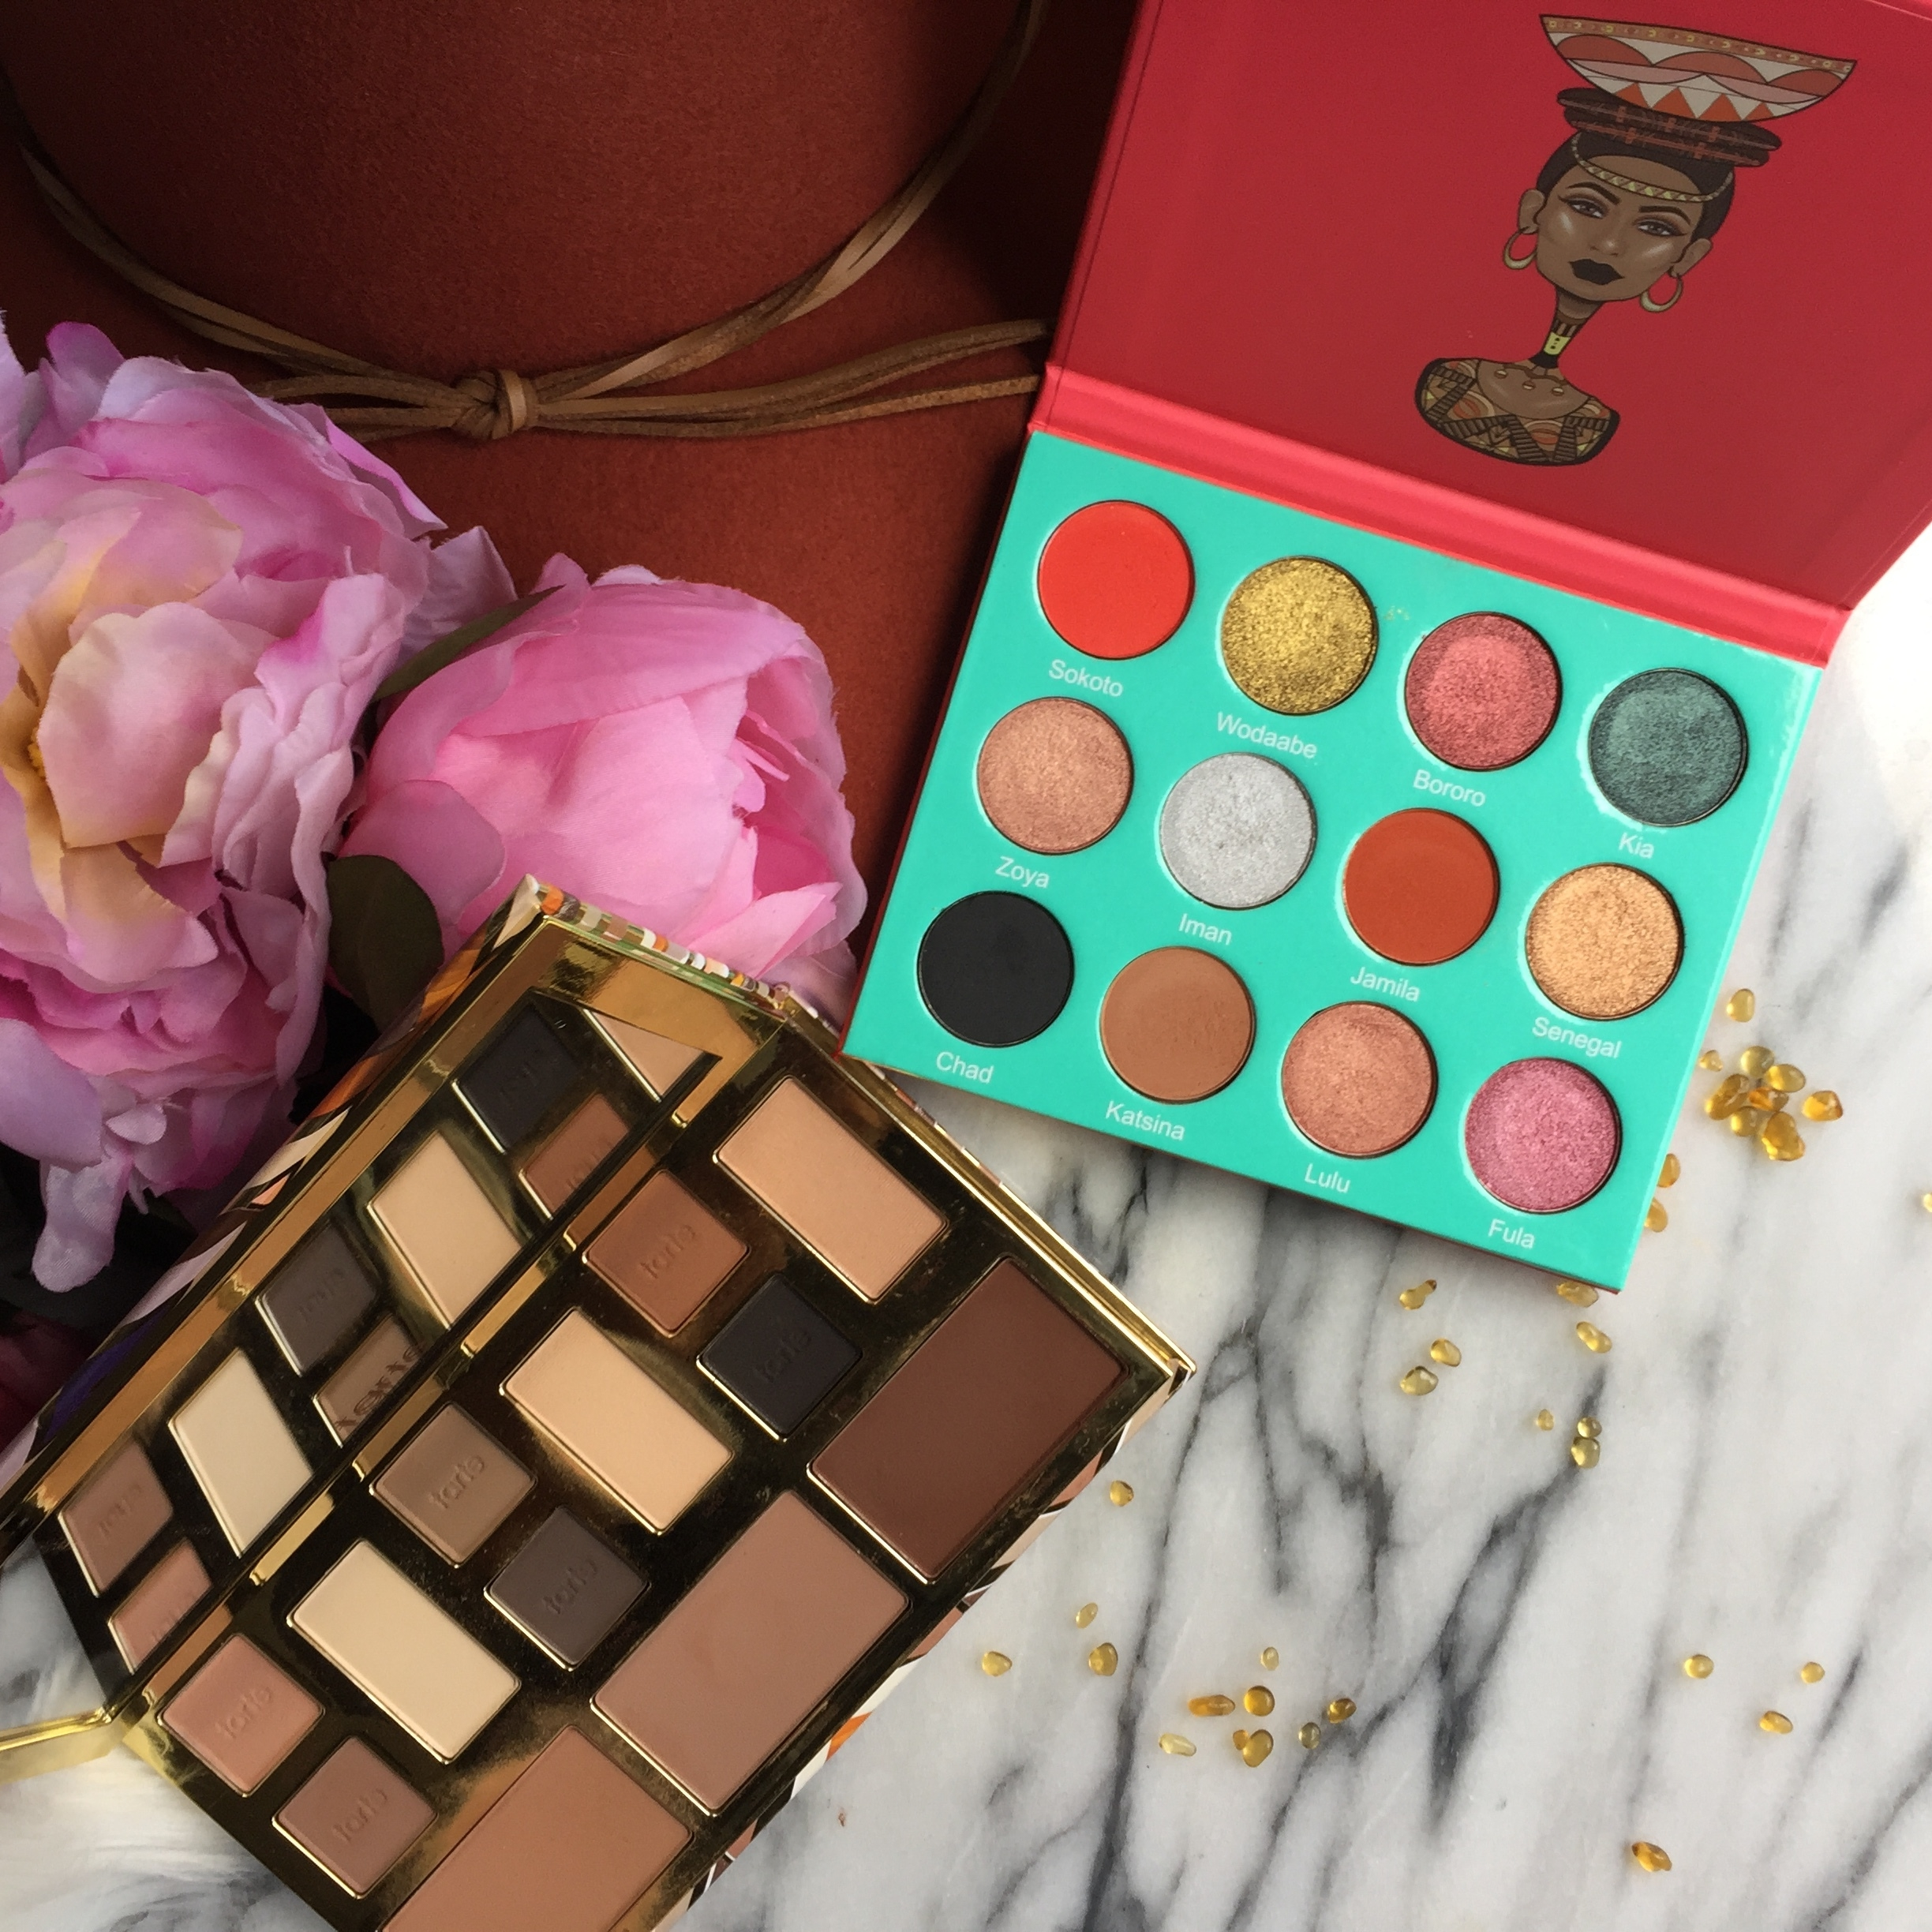 Juvia's Place The Saharan and Tarte Clay Play Face Palette